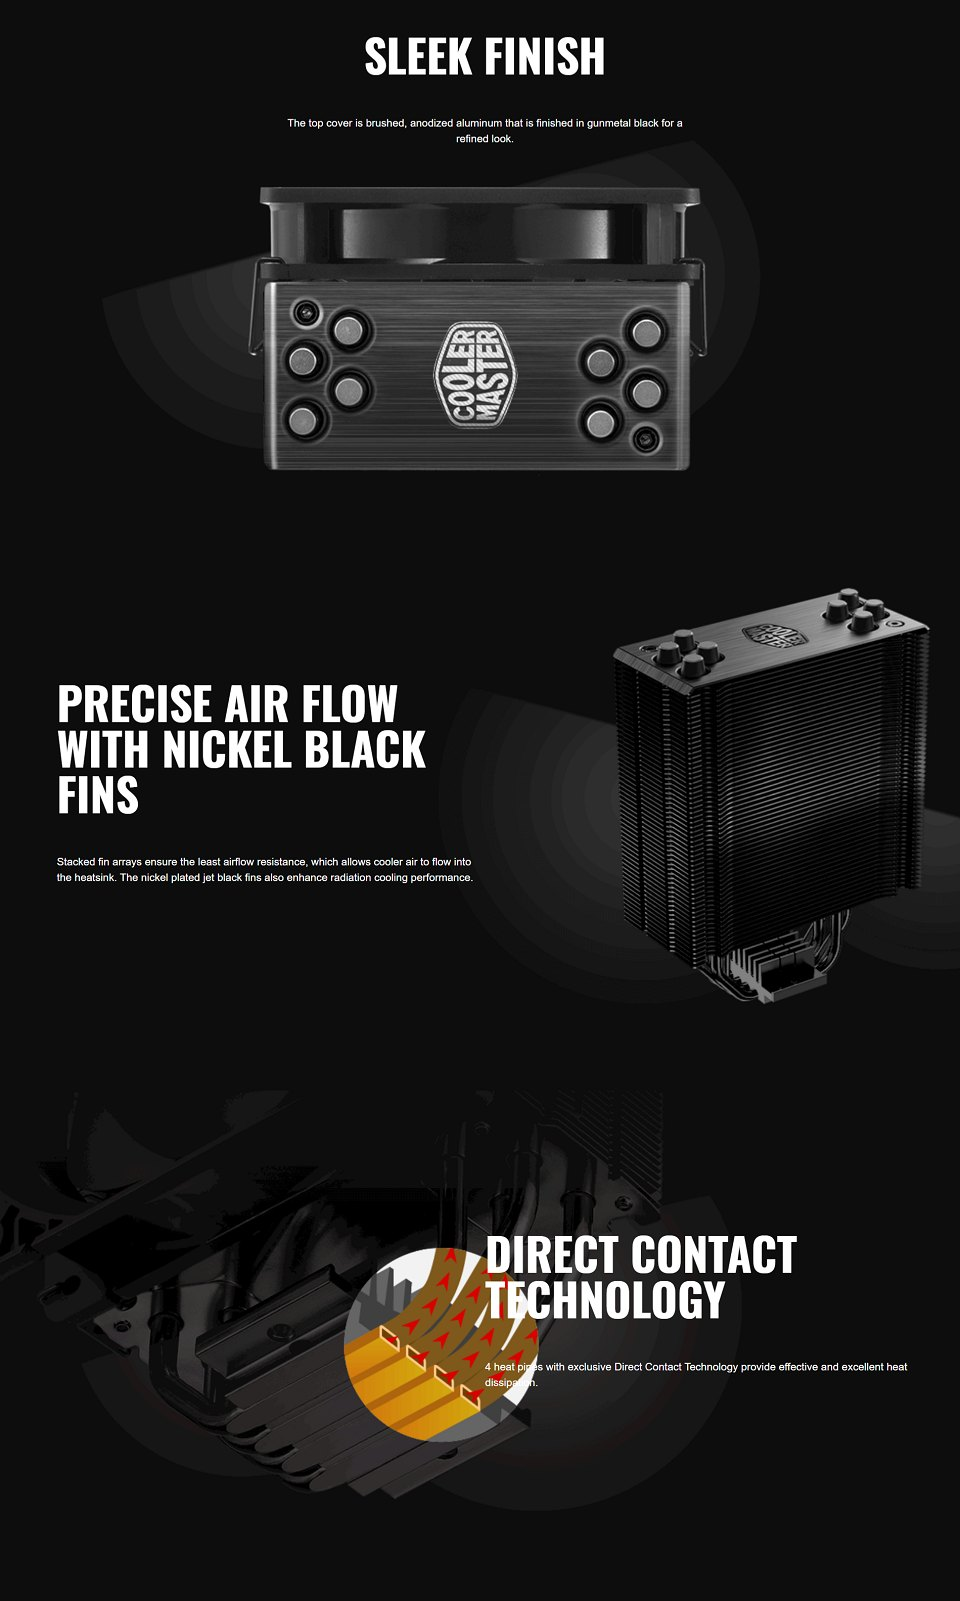 Cooler Master Hyper 212 Black Edition CPU Cooler features